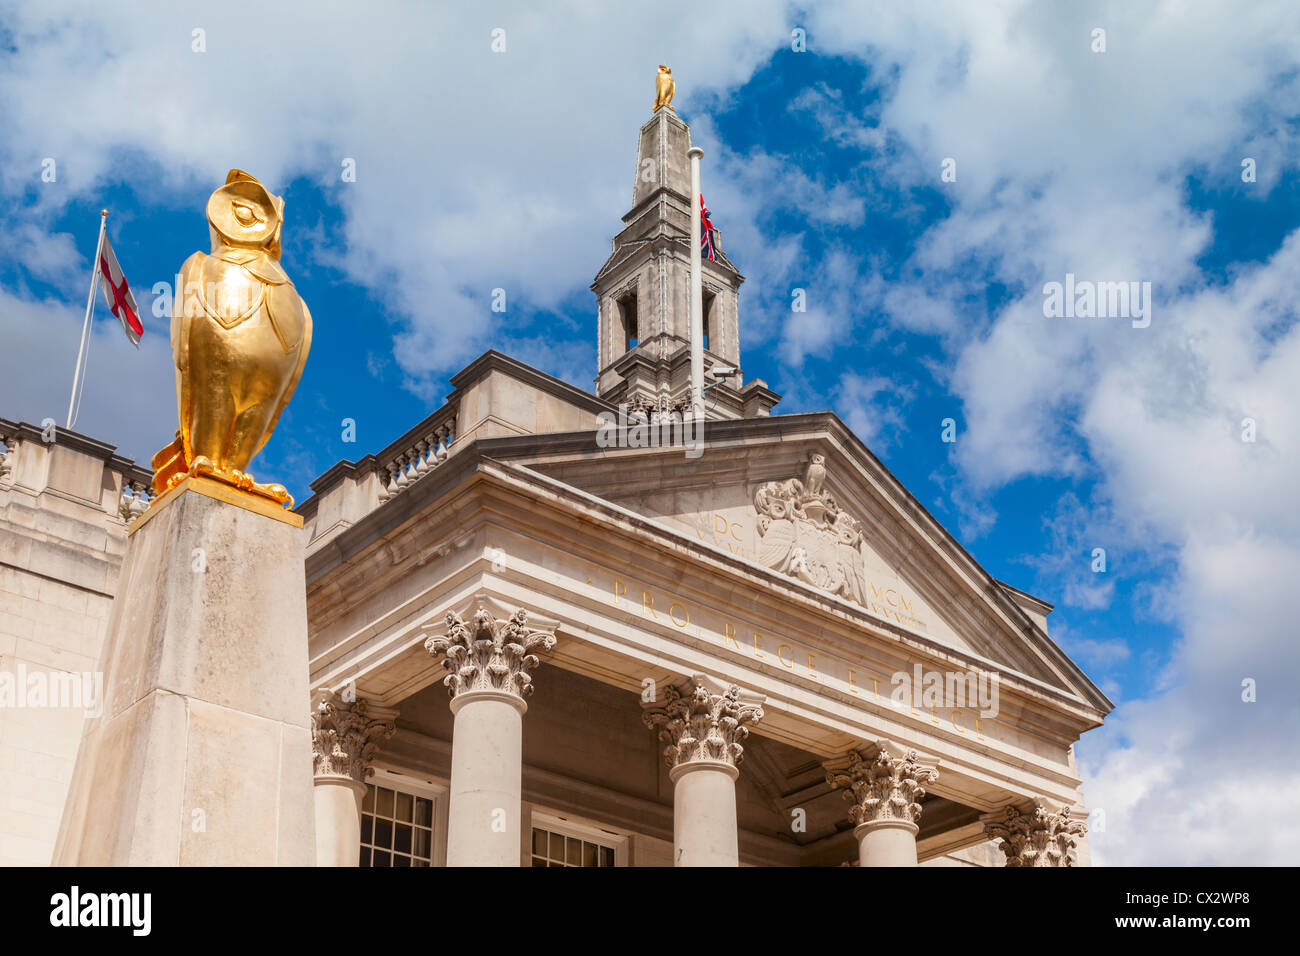 Detail of Leeds Civic Hall, opened in 1933, which stands in Millennium Square - Stock Image